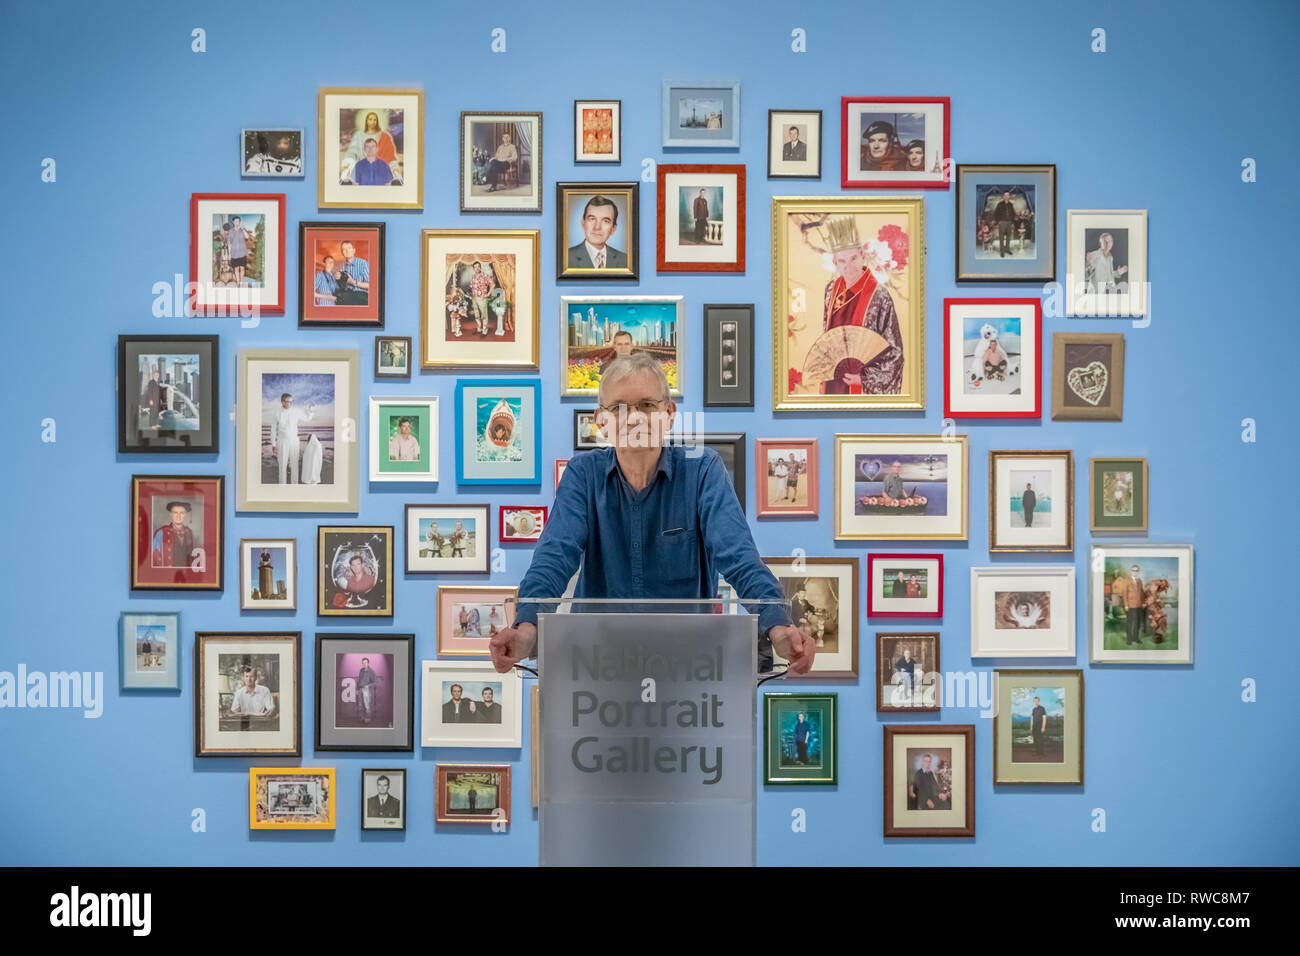 London, UK. 6th Mar, 2019. Martin Parr 'Only Human' exhibition at the National Portrait Gallery which brings together some of Parr's best known photographs with new work never exhibited before, to focus on one of his most engaging subjects - people. Credit: Guy Corbishley/Alamy Live News - Stock Image